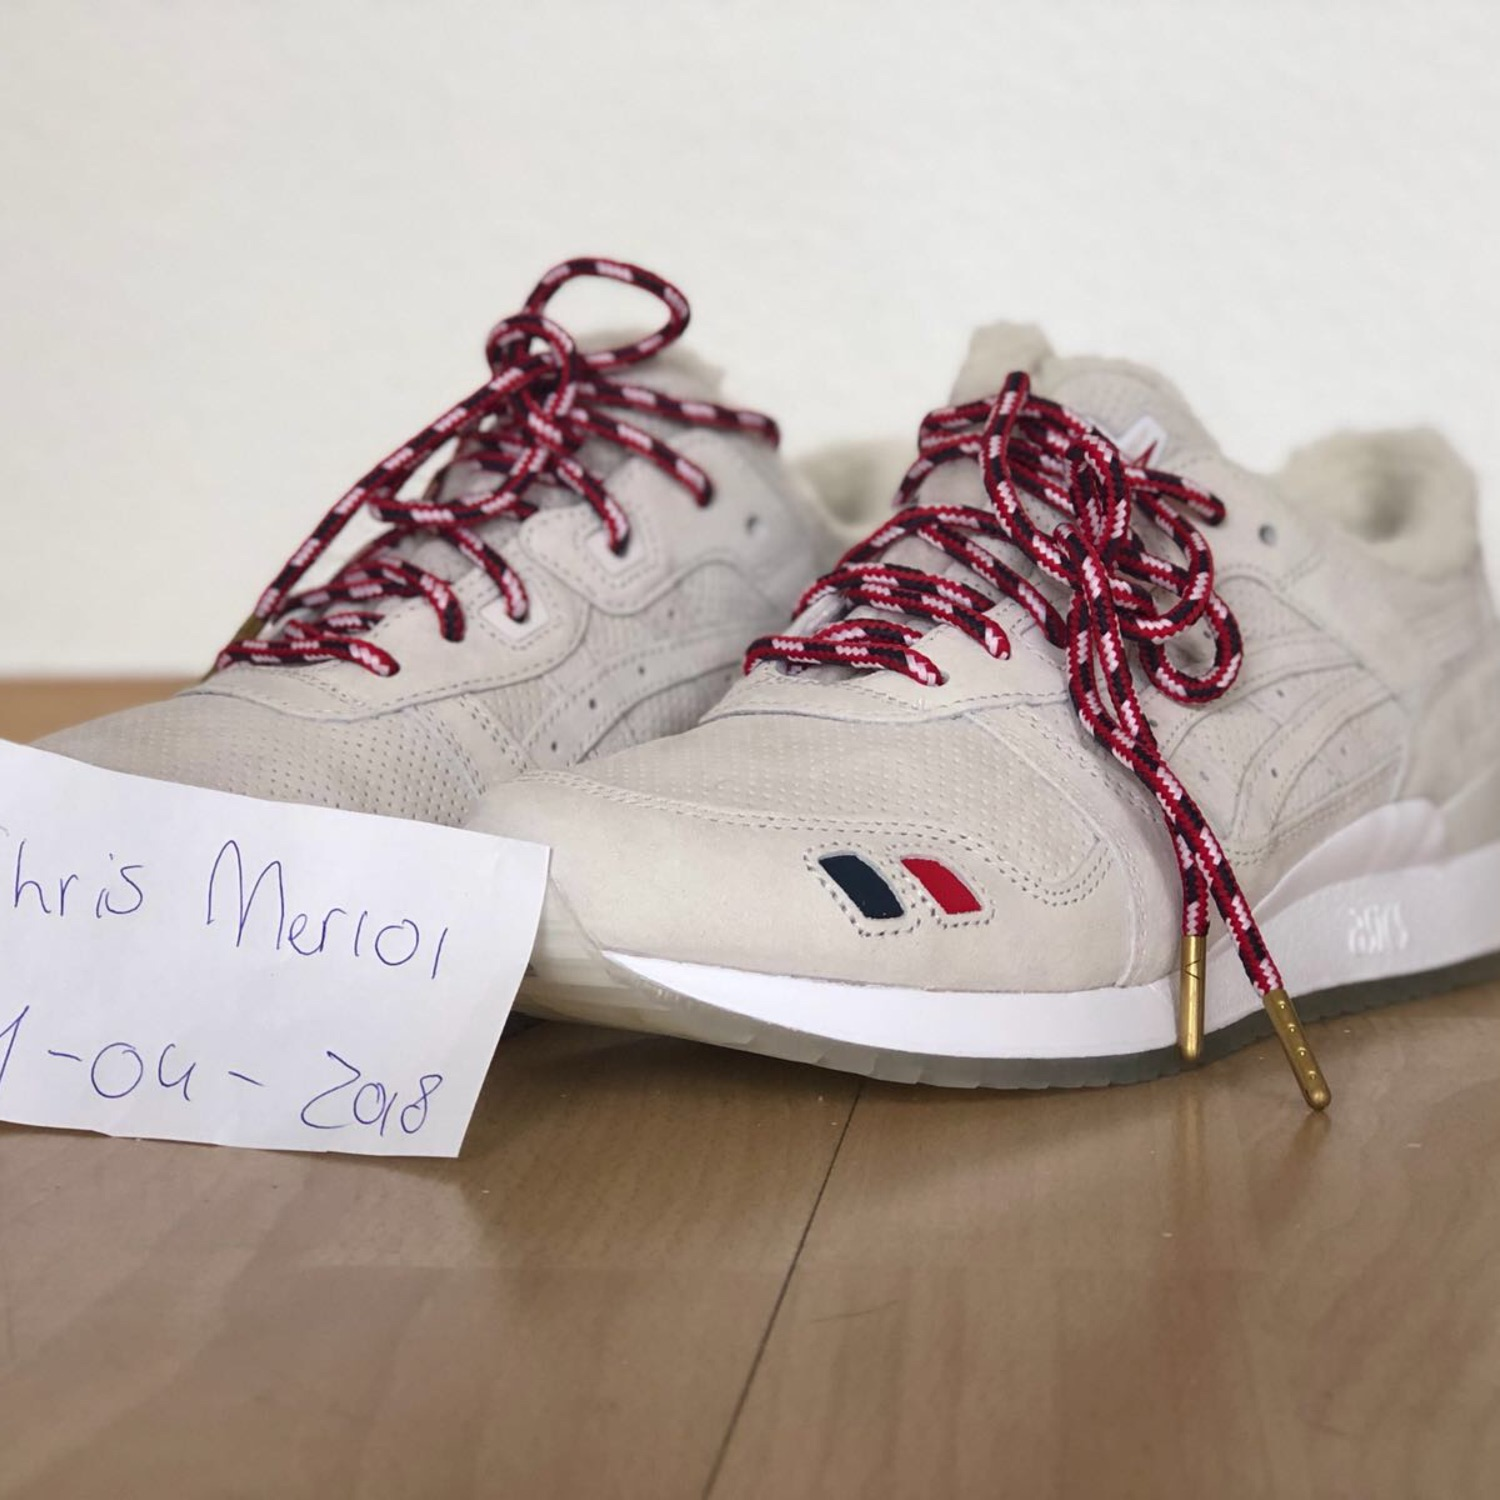 separation shoes ffdcb 736ca Kith X Moncler X Asics Gel-Lyte Iii